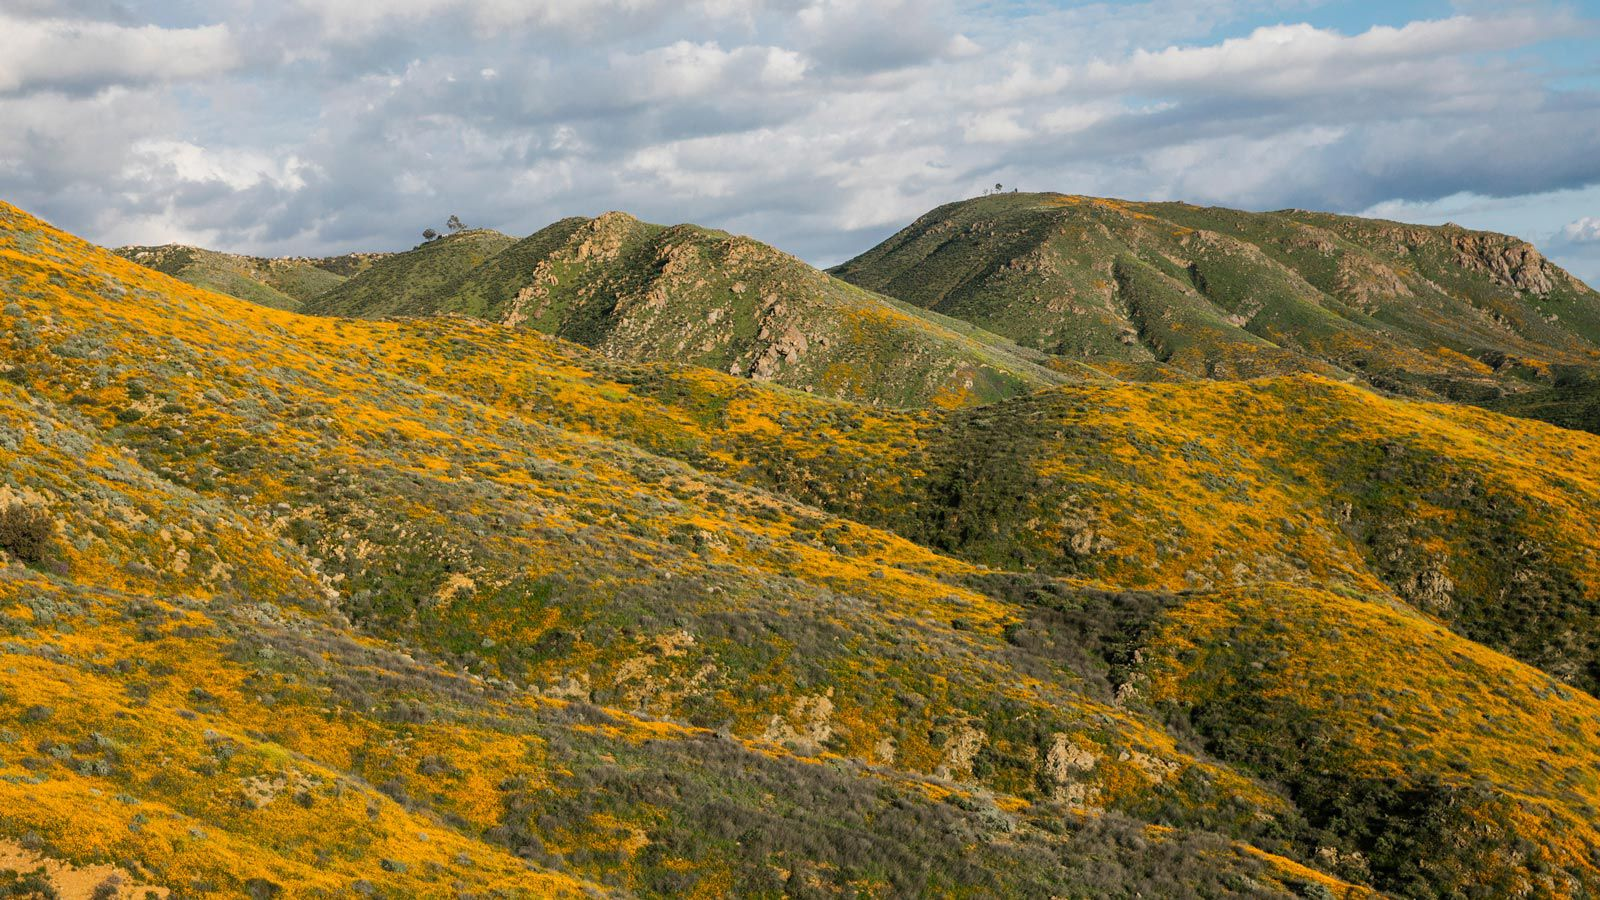 Spring 2019 Walker Canyon California Wildflower Superbloom